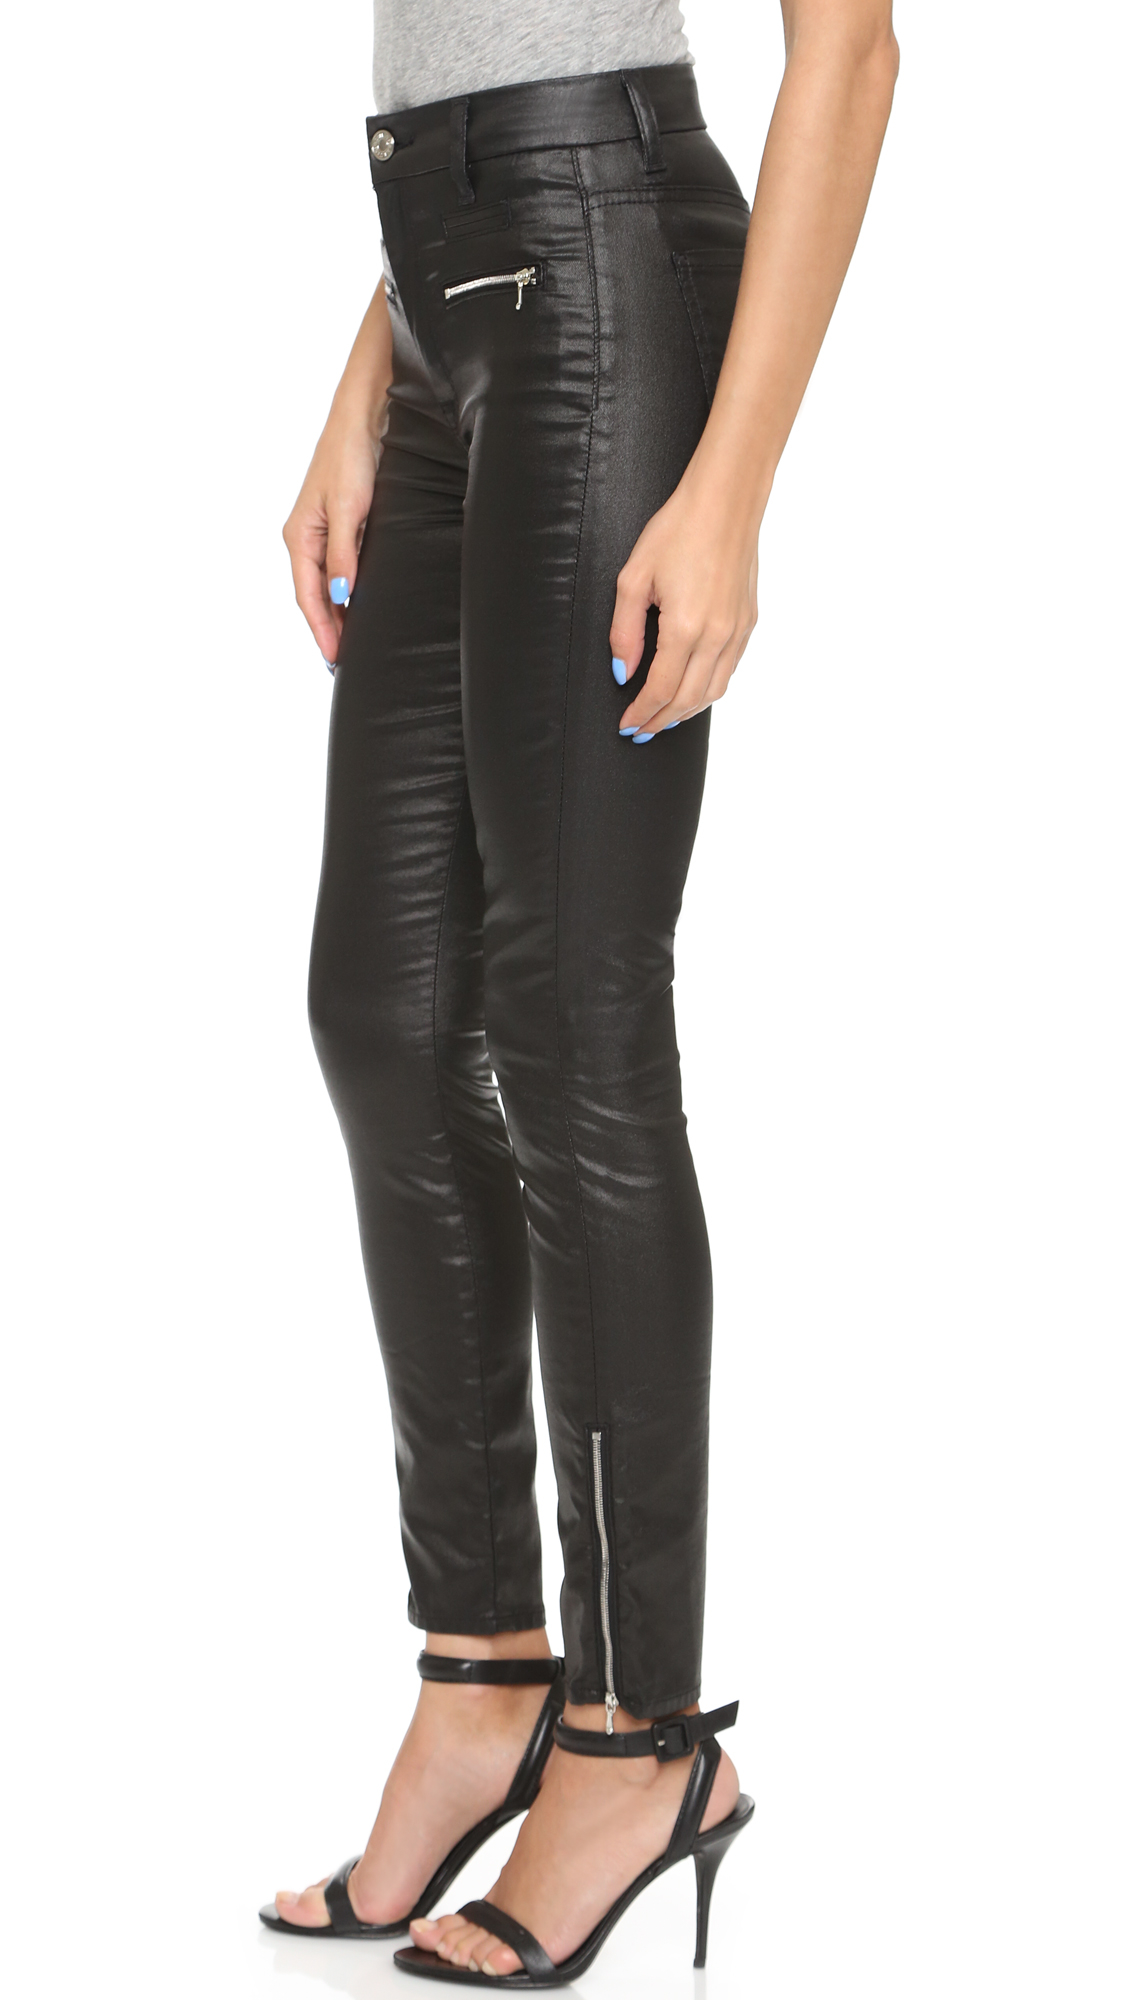 7 for all mankind High Waisted Zip Ankle Jeather Skinny Jeans ...